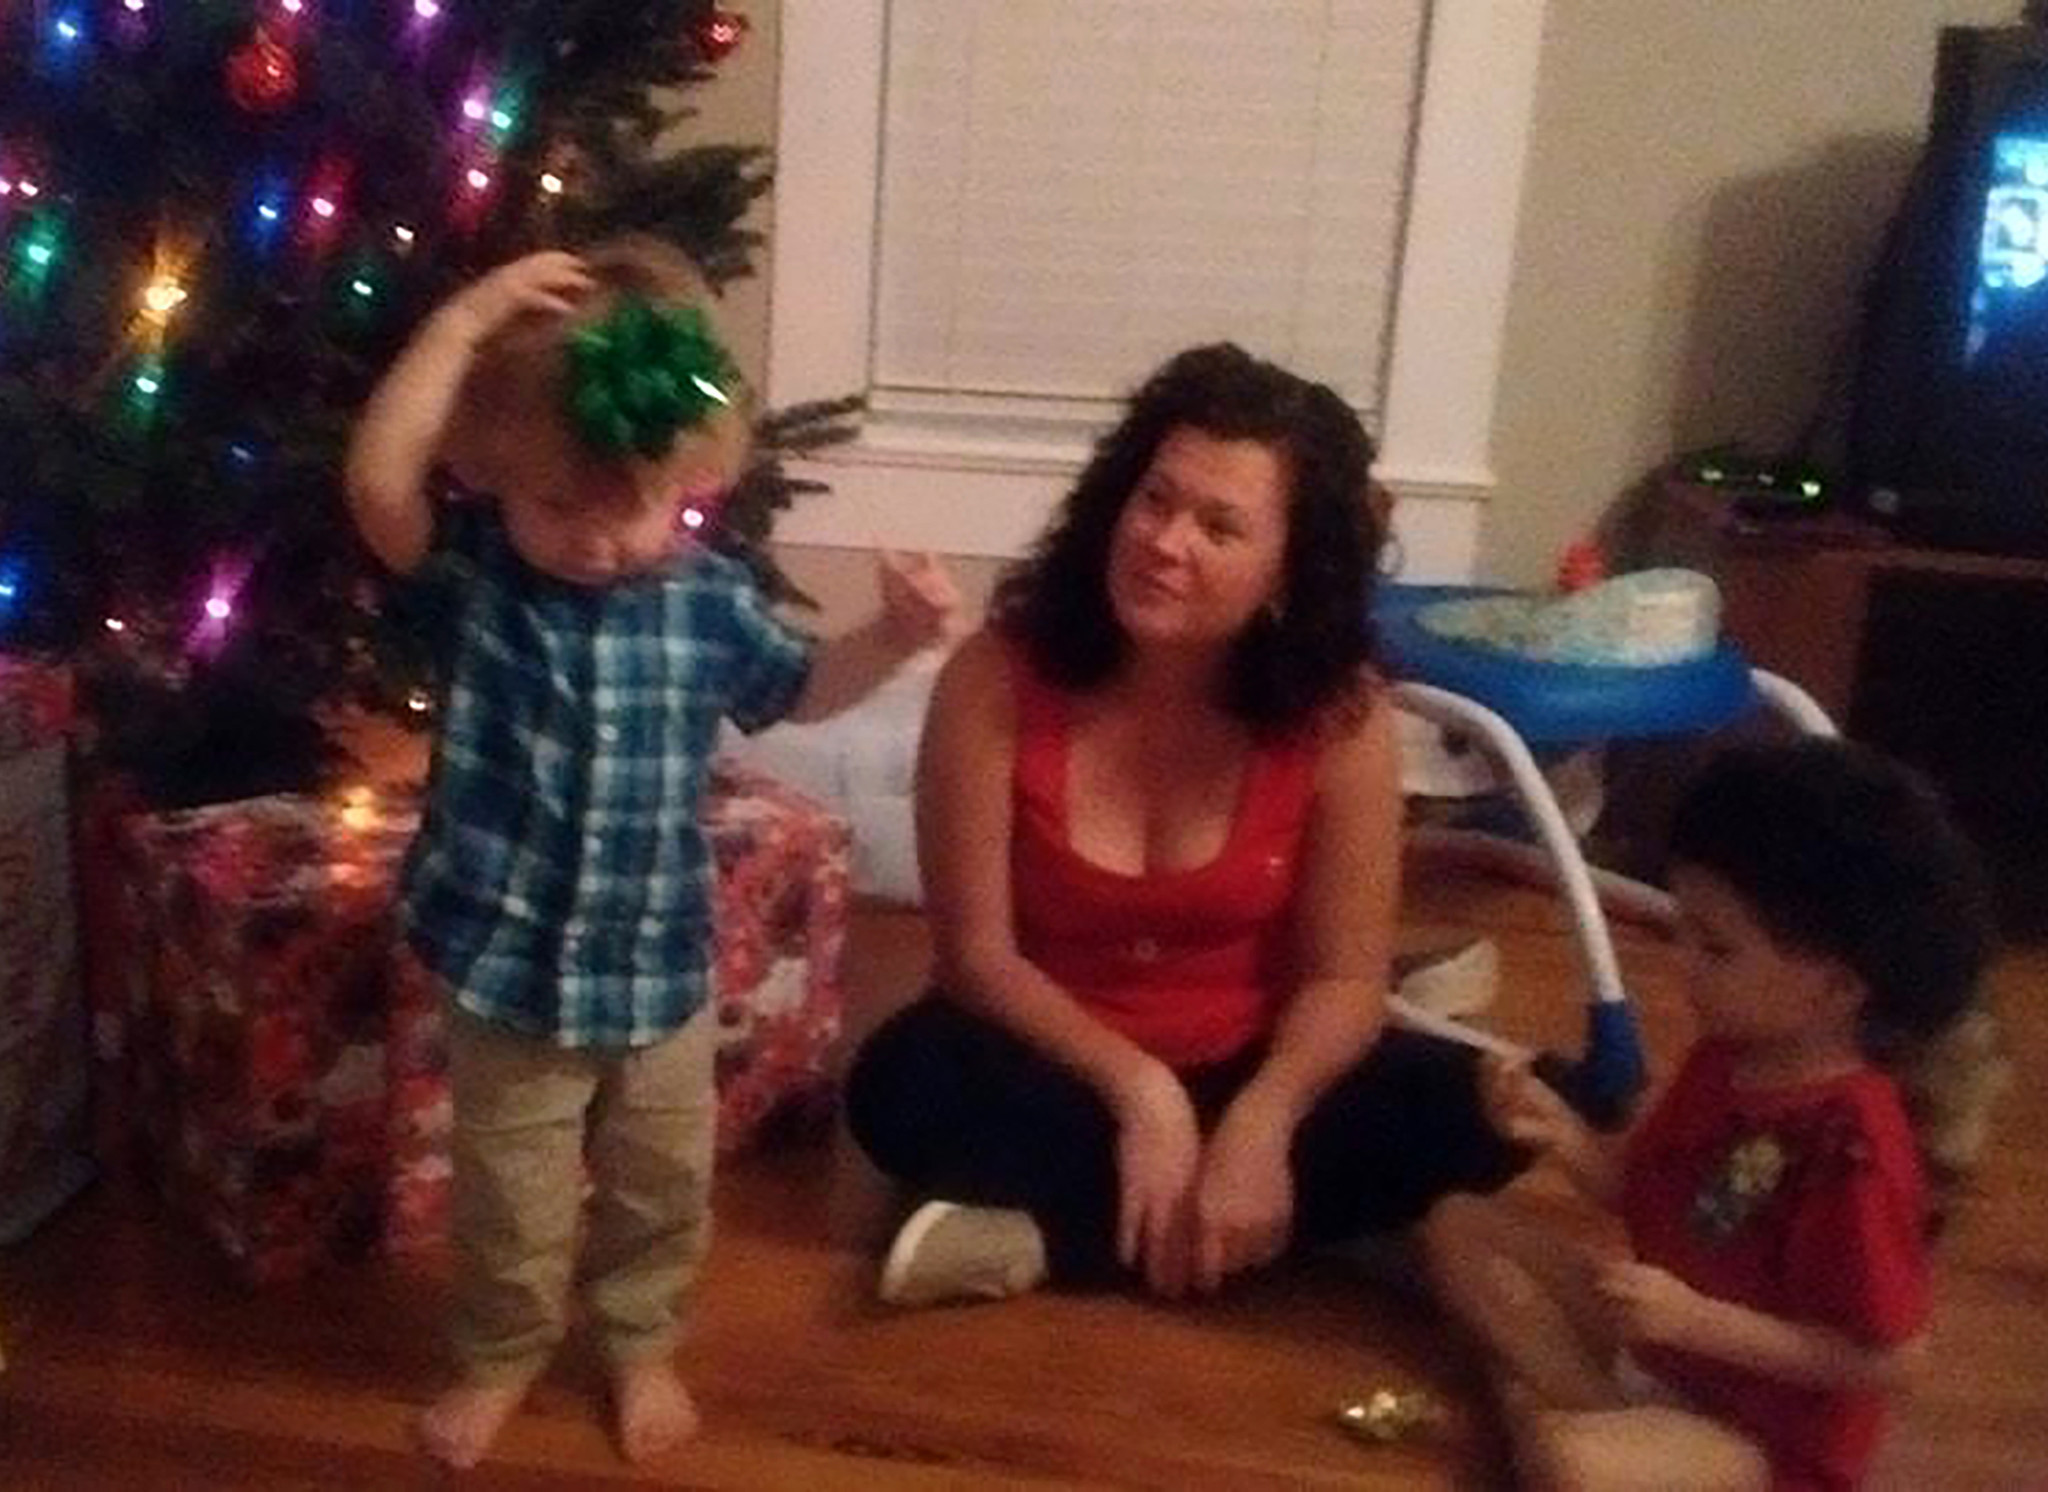 Family snapshots and video from Christmas Day 2016 show Heather and Daniel Kelsey smiling and sitting on the floor next to a tree trimmed with colored lights as their boys tear open their gifts. (Courtesy Mike Belisle)